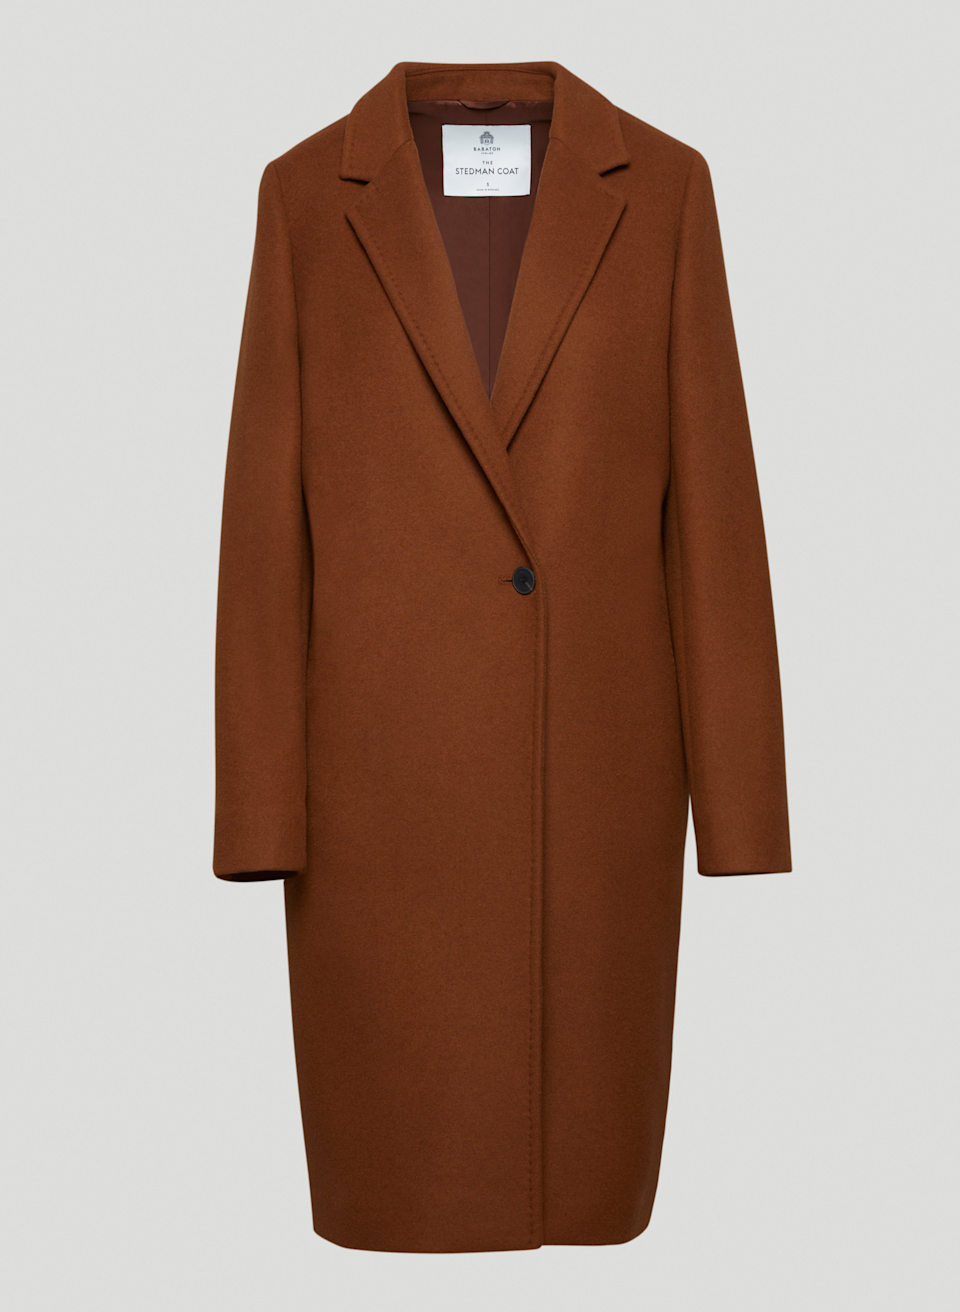 """<h2>Aritzia The Stedman Coat</h2><br>""""I think a camel coat is one of the chicest, most versatile outerwear pieces because of its neutral color — but it has to be a proper trench length, and not cropped like a pea coat. It inevitably becomes my most worn piece throughout fall. This year, I'd like to give my tattered older style an upgrade! But I have a few rules for the new coat: It absolutely has to be wool, the bottom hem has to hit below my knees, and it needs to be slightly oversized to accommodate for thick knits."""" <em>– Jinnie Lee, Freelance Fashion Writer</em><br><br><em>Shop <a href=""""http://aritzia.com"""" rel=""""nofollow noopener"""" target=""""_blank"""" data-ylk=""""slk:Aritzia"""" class=""""link rapid-noclick-resp"""">Aritzia</a></em><br><br><strong>Aritzia</strong> The Stedman Coat, $, available at <a href=""""https://go.skimresources.com/?id=30283X879131&url=https%3A%2F%2Fwww.aritzia.com%2Fus%2Fen%2Fproduct%2Fthe-stedman-coat%2F90429.html%3Fdwvar_90429_color%3D16976"""" rel=""""nofollow noopener"""" target=""""_blank"""" data-ylk=""""slk:Aritzia"""" class=""""link rapid-noclick-resp"""">Aritzia</a>"""